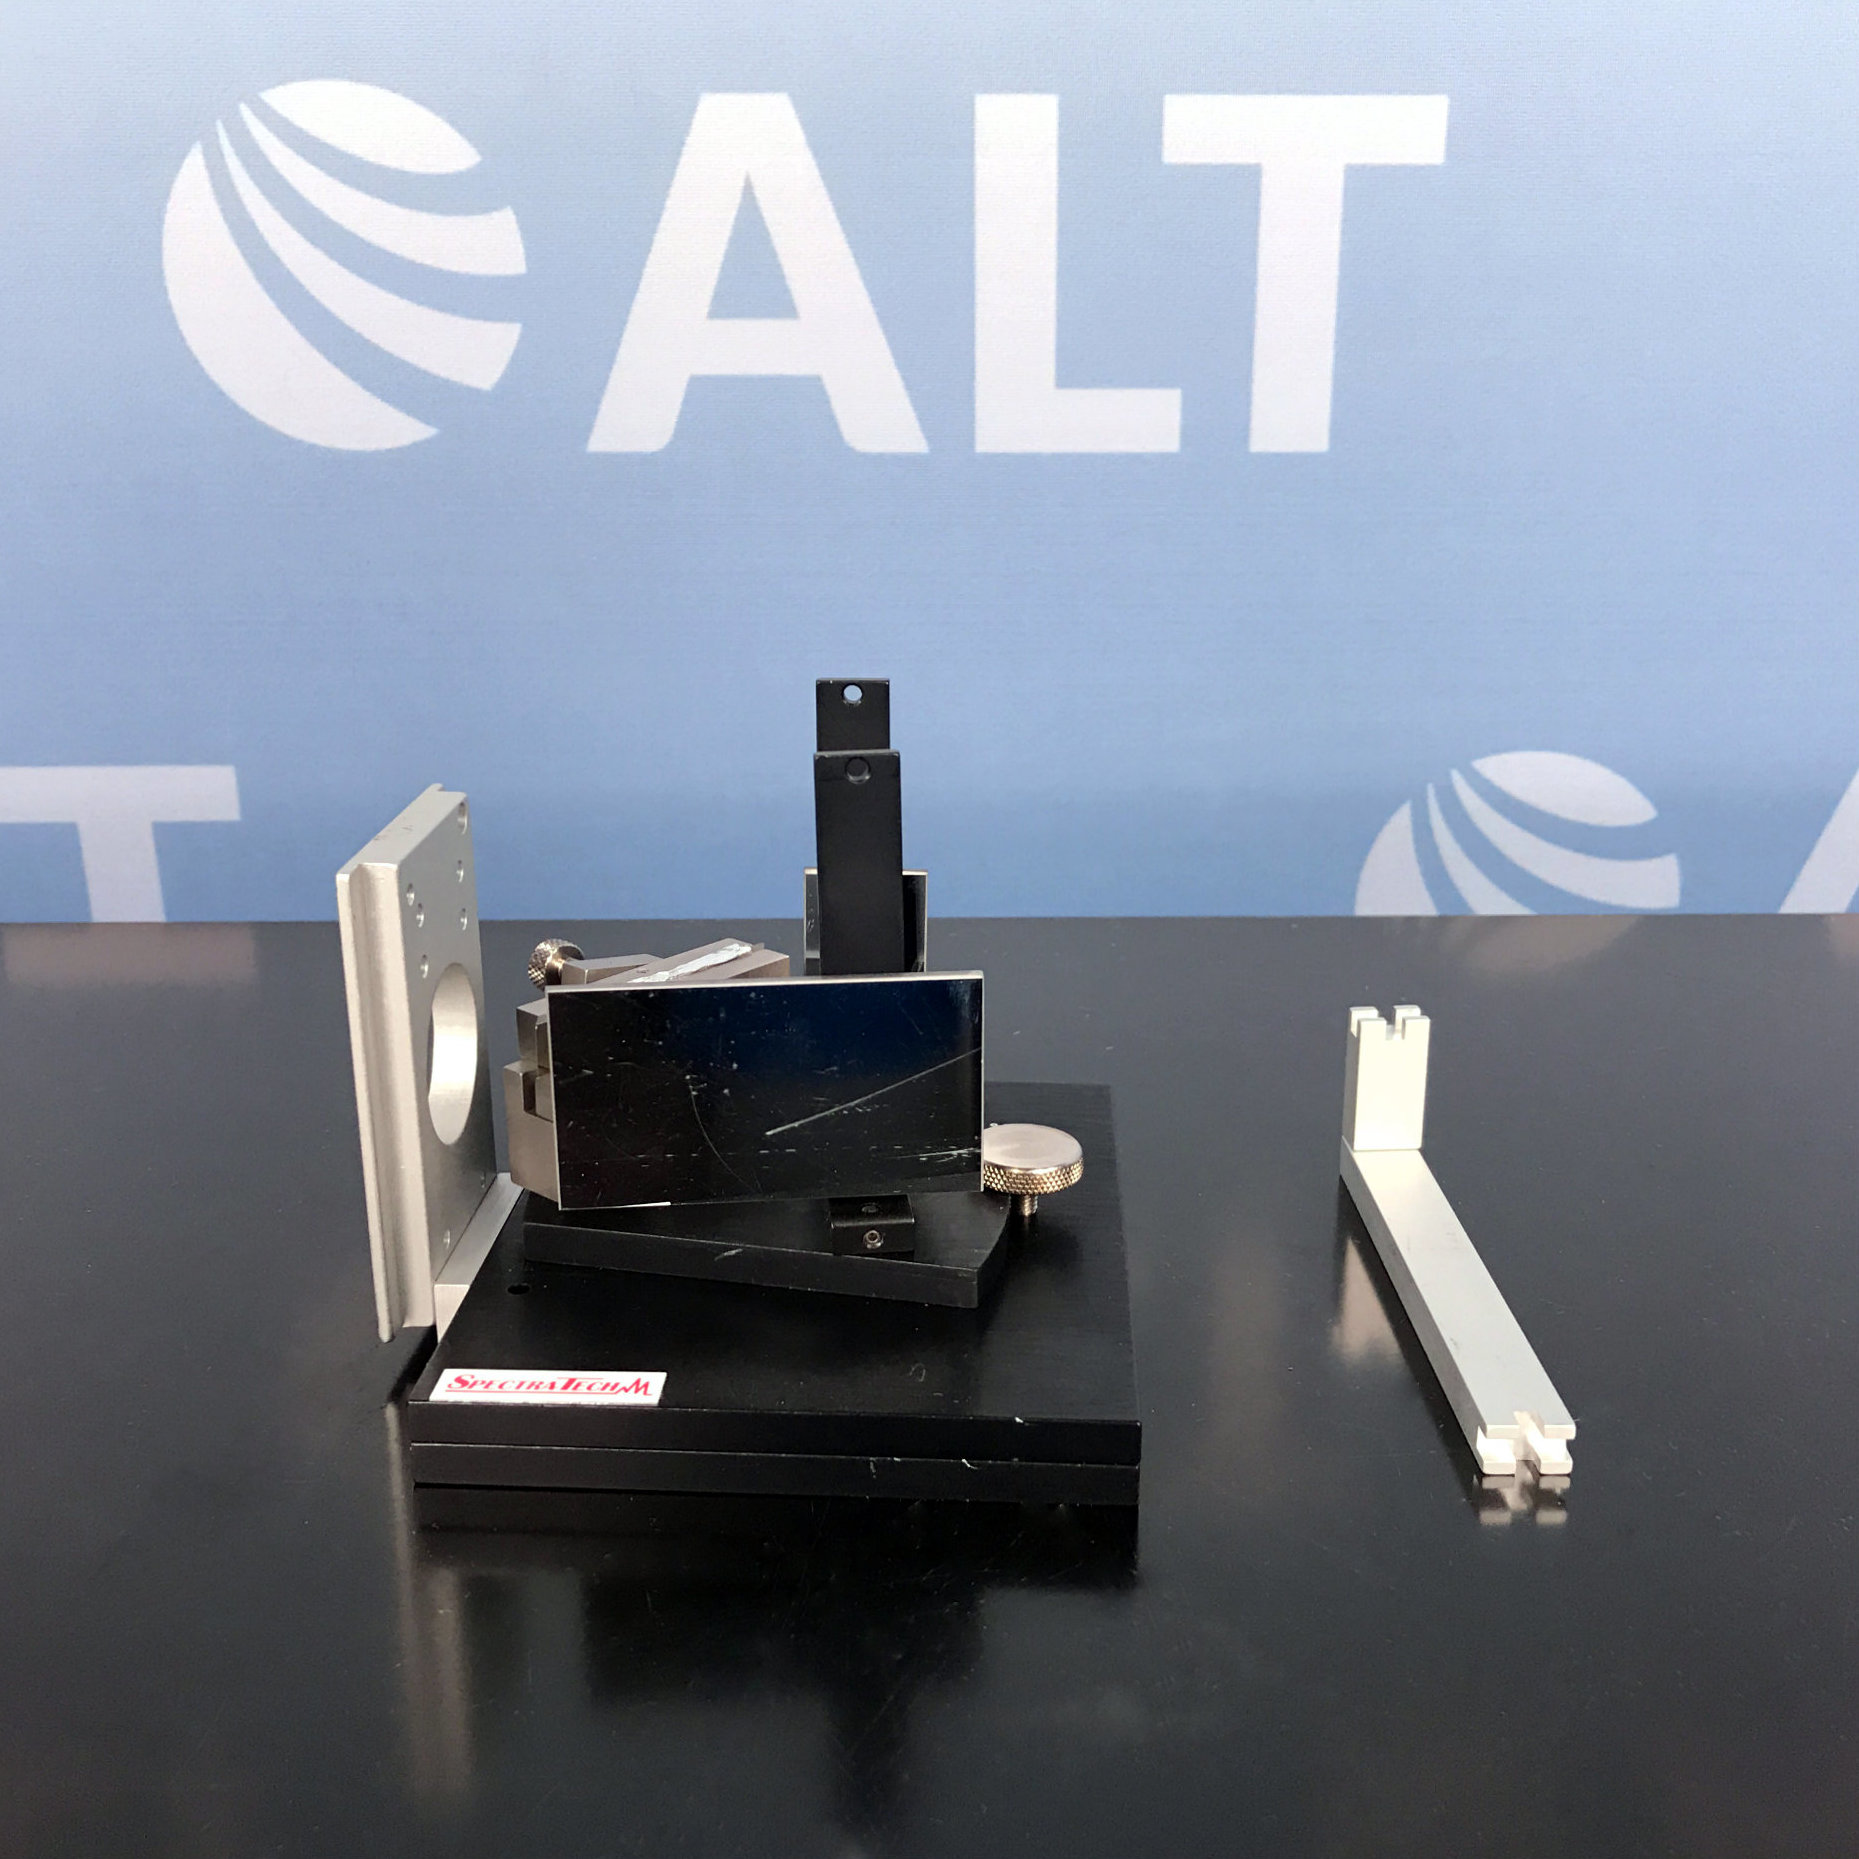 Spectra-Tech Model 302 Continuously Variable Angle ATR P/N 0012-015 Image